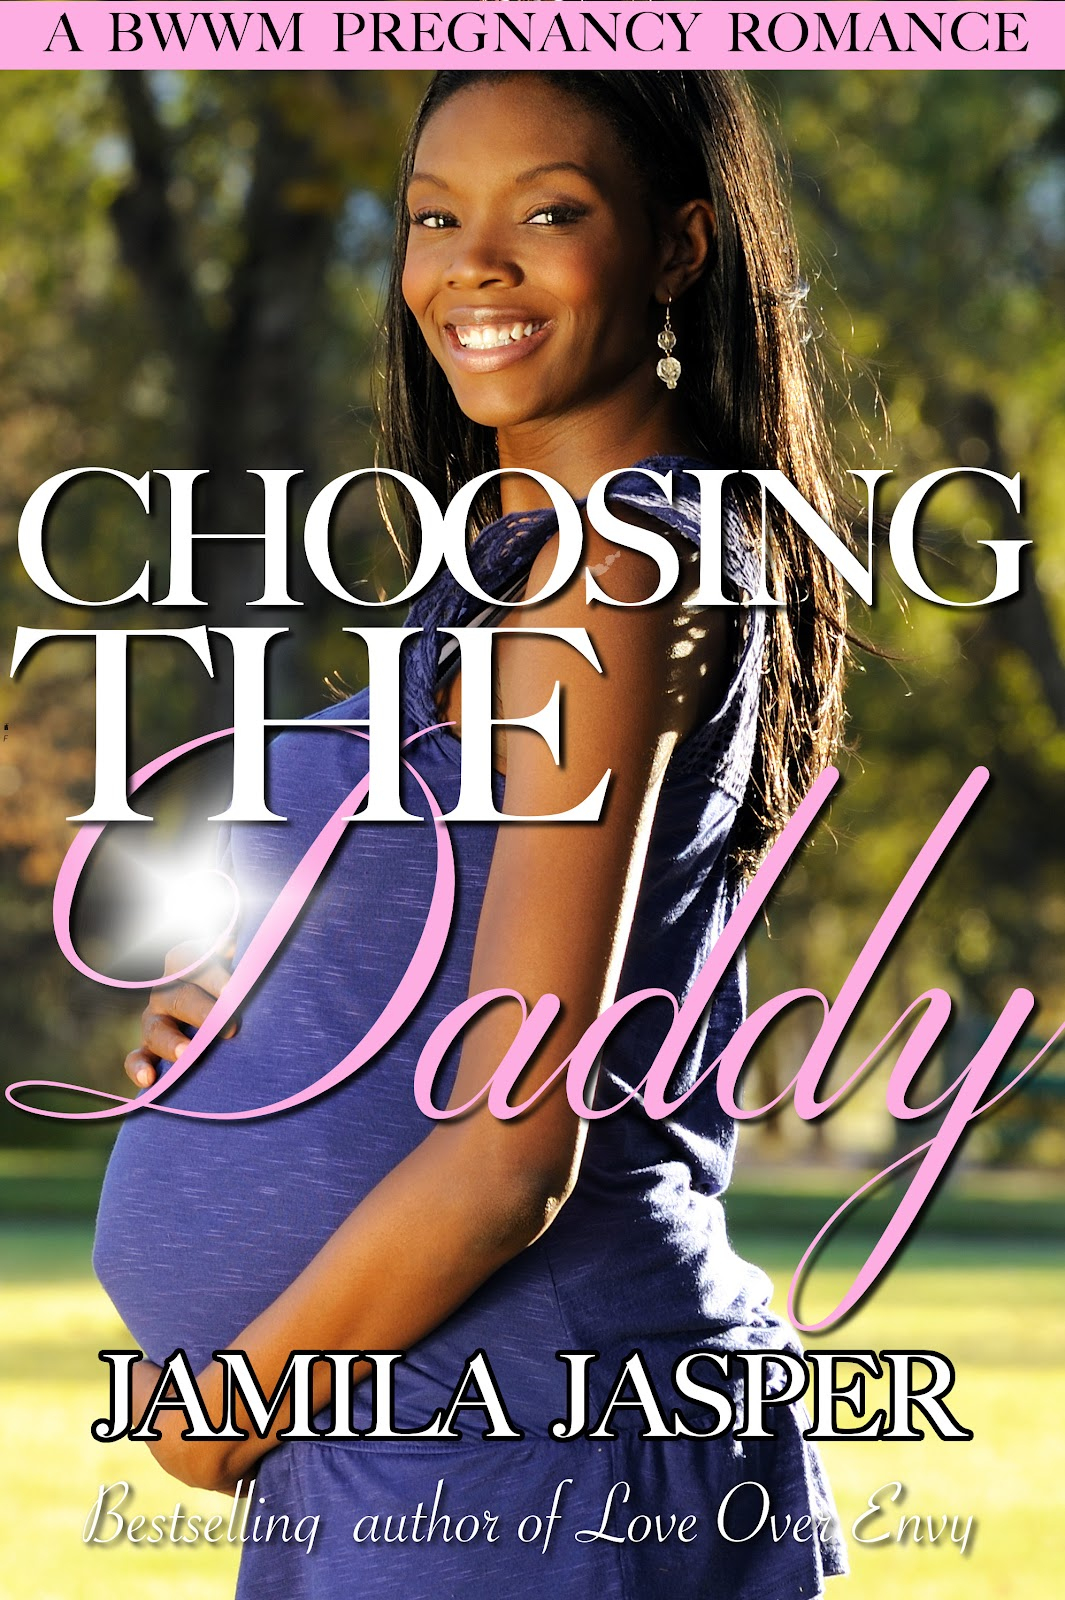 Dark Romance Books - Choosing The Daddy